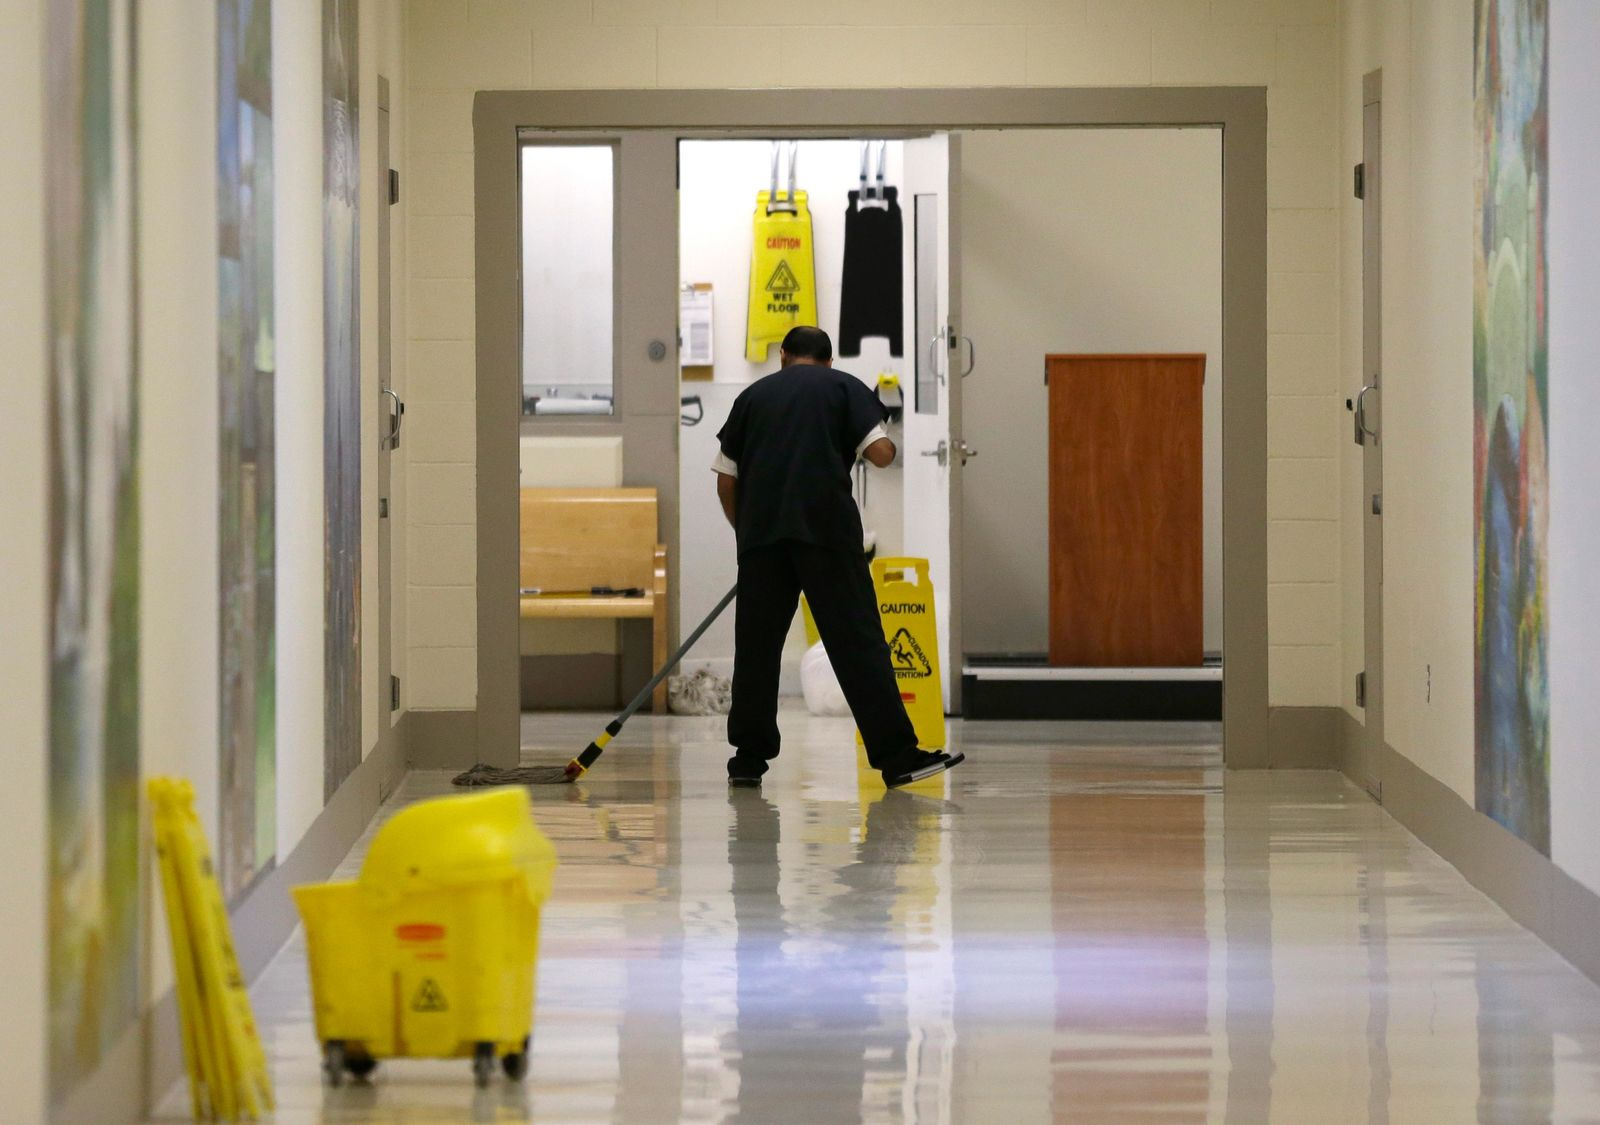 FILE - In this June 21, 2017, file photo, a detainee mops a floor in a hallway of the Northwest Detention Center in Tacoma, Wash., during a media tour of the facility.  The Trump administration is opposing Washington state's effort to make a privately run, for-profit immigration jail pay detainees minimum wage for the work they do. Washington Attorney General Bob Ferguson sued The GEO Group in 2017, saying its Northwest Detention Center in Tacoma must pay the state minimum wage to detainees who perform kitchen, janitorial and other tasks. (AP Photo/Ted S. Warren, File)